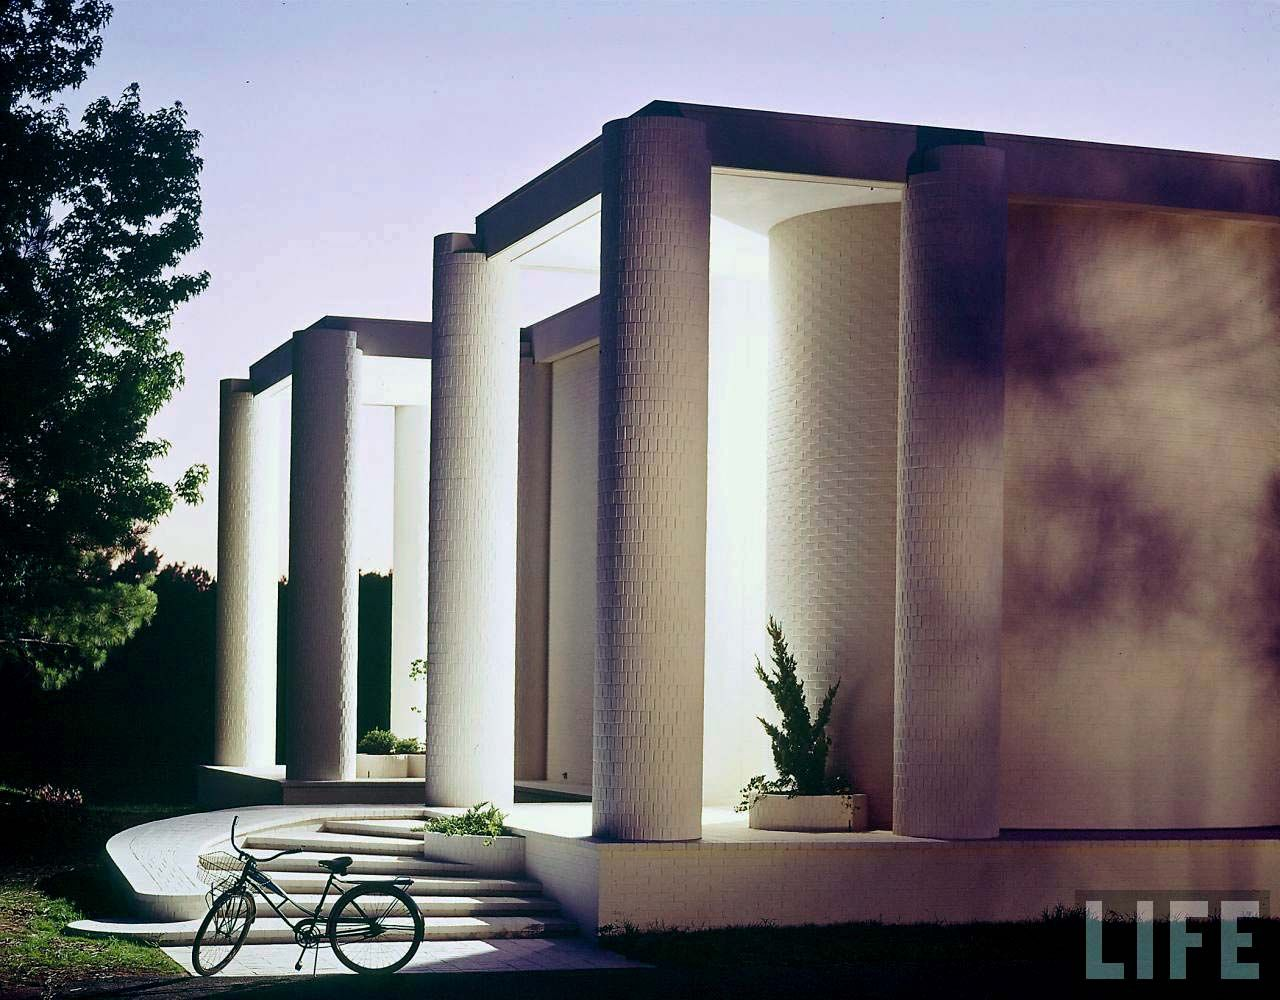 House designed by Paul Rudolph, 1964